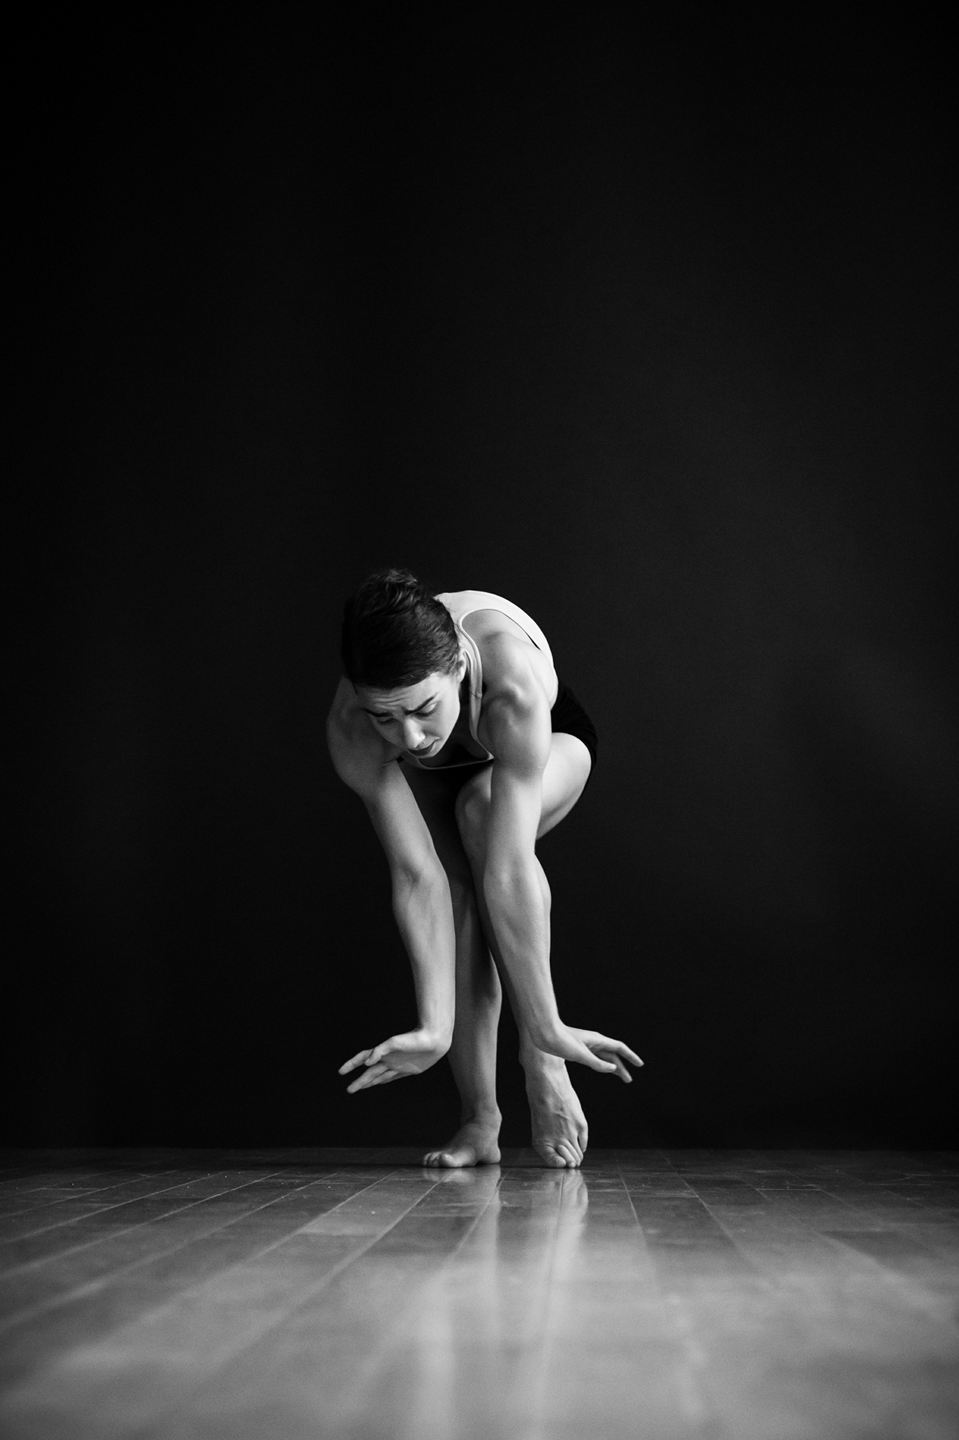 Los Angeles Dance Portrait Photo - Olga Sokolova - by Tommy Xing Photography 10.JPG